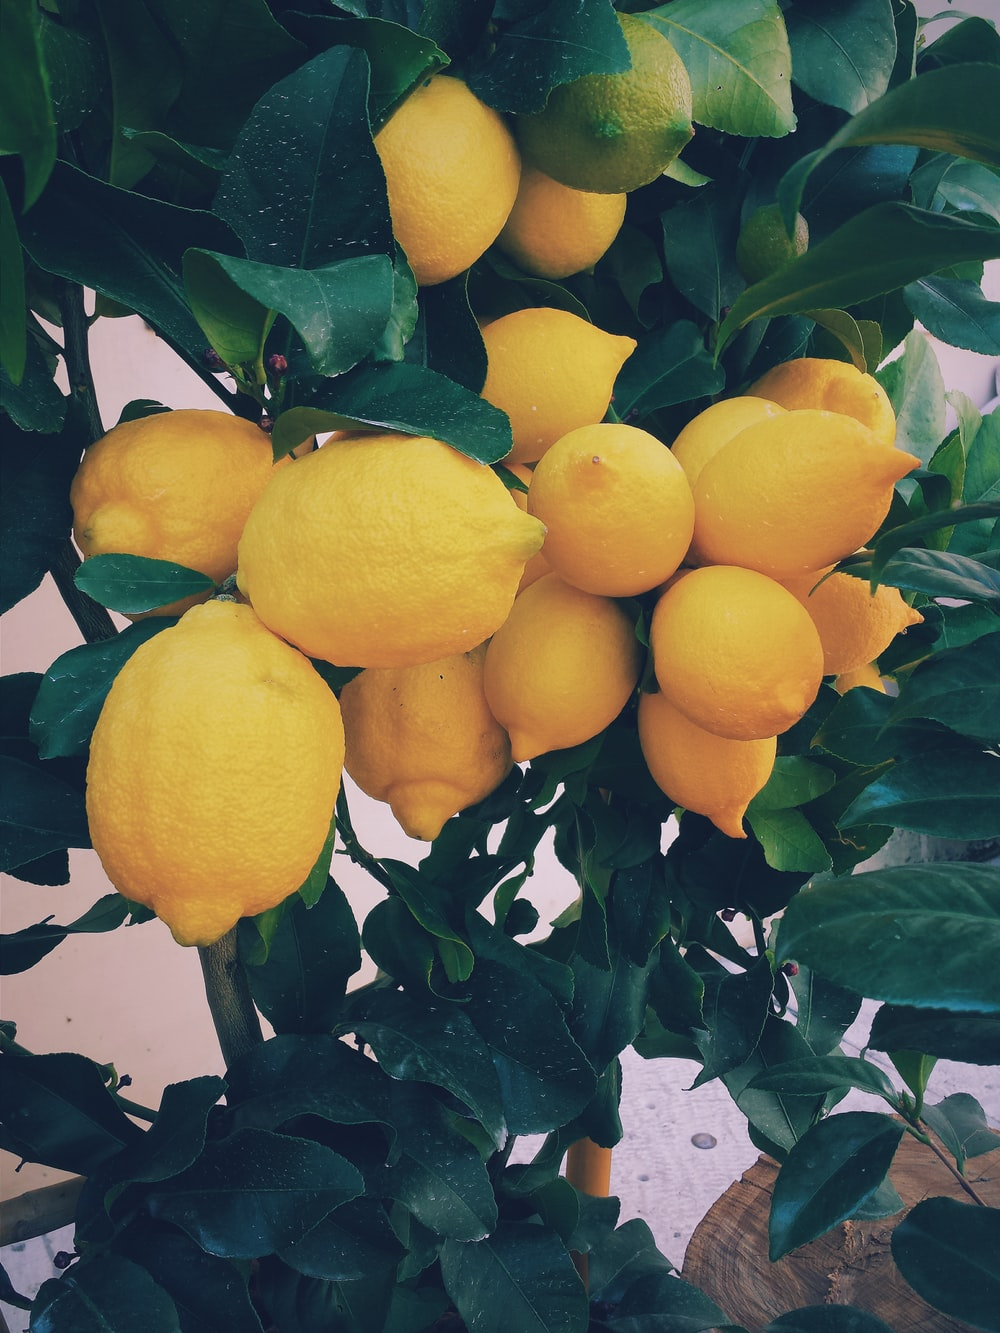 500 Lemon Tree Pictures Hd Download Free Images On Unsplash